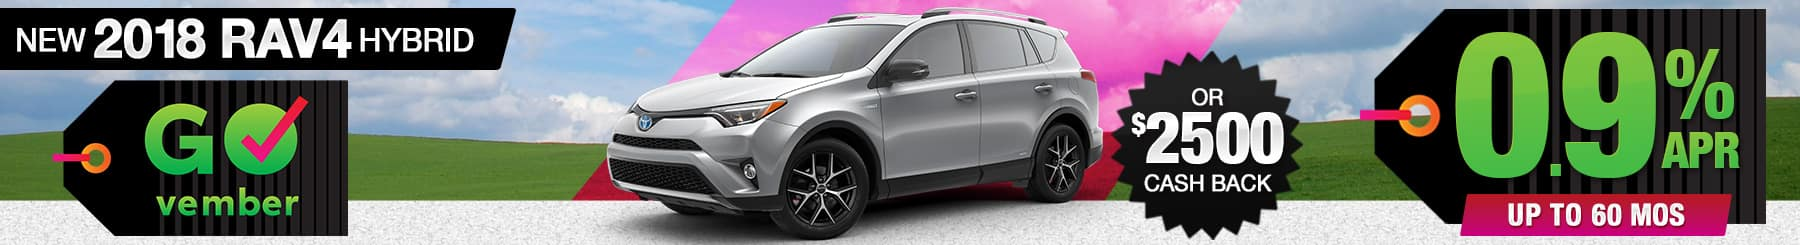 2018 Toyota RAV4 Hybrid APR or Cash Back Special